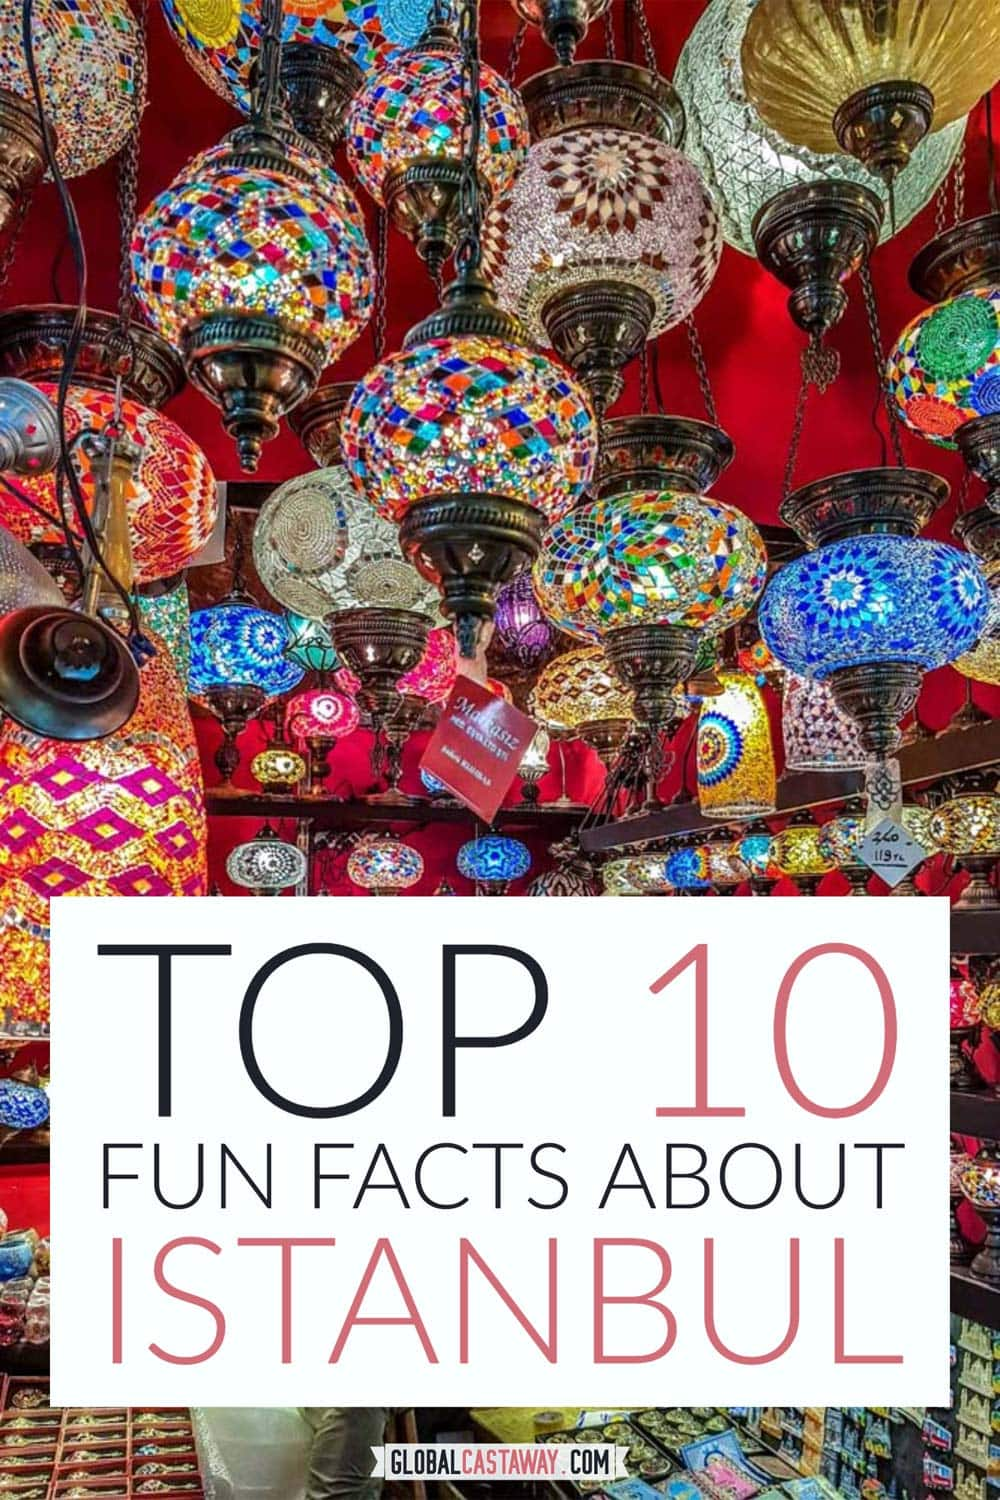 facts-about-istanbul-pin